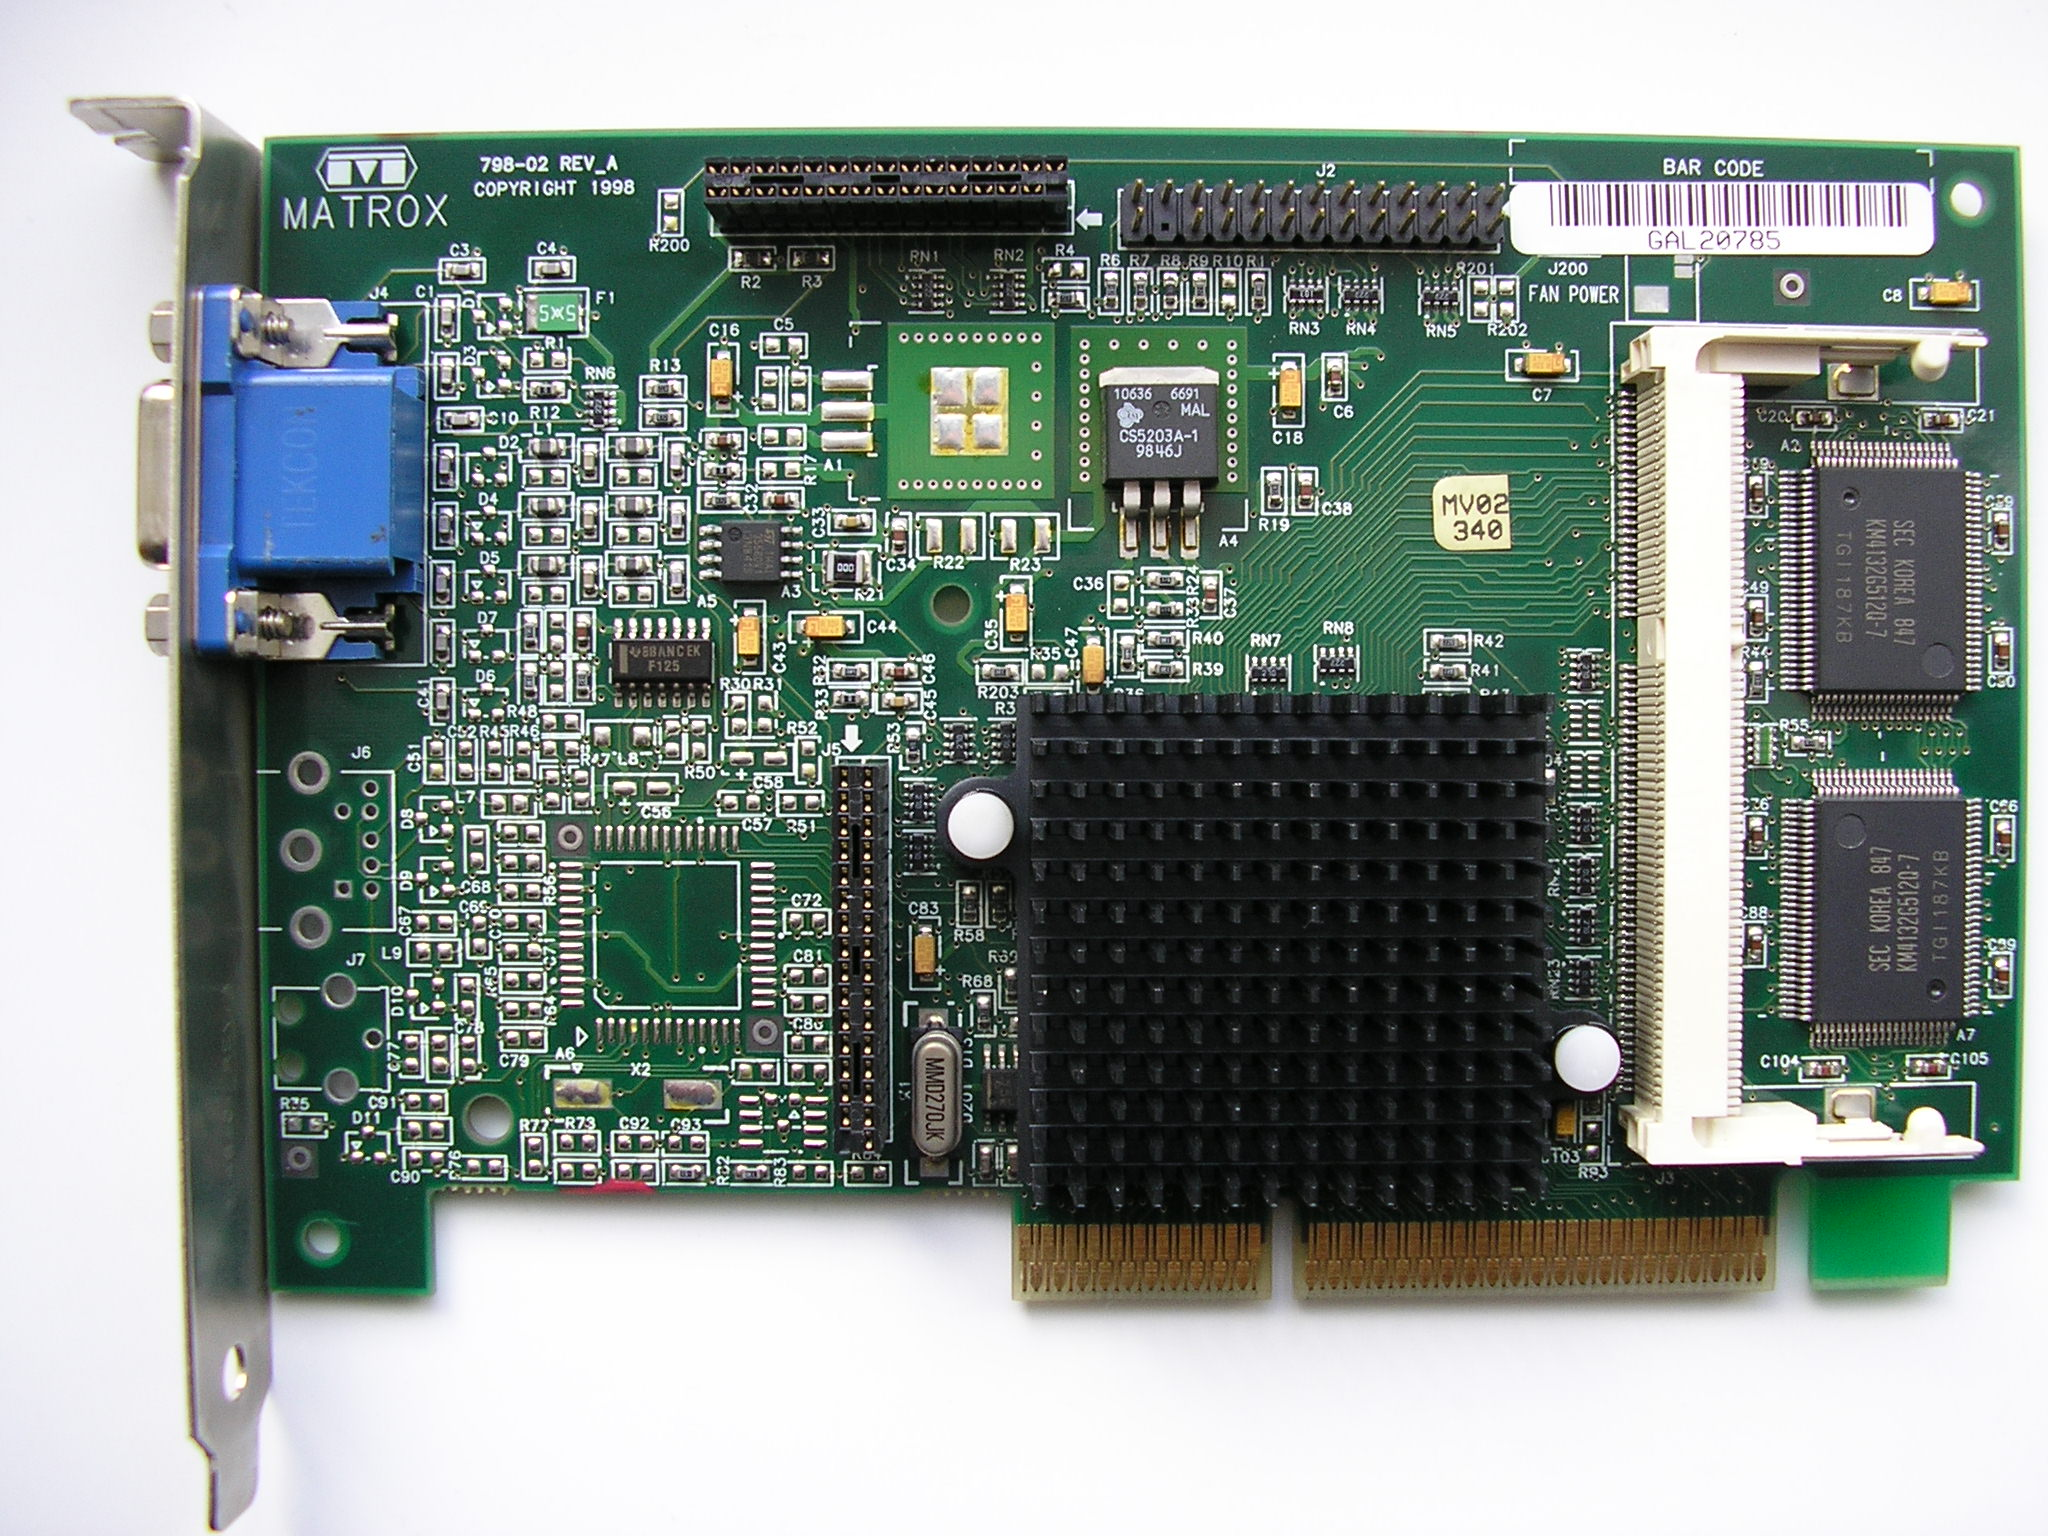 MATROX GRAPHICS MILLENIUM G200 AGP WINDOWS XP DRIVER DOWNLOAD